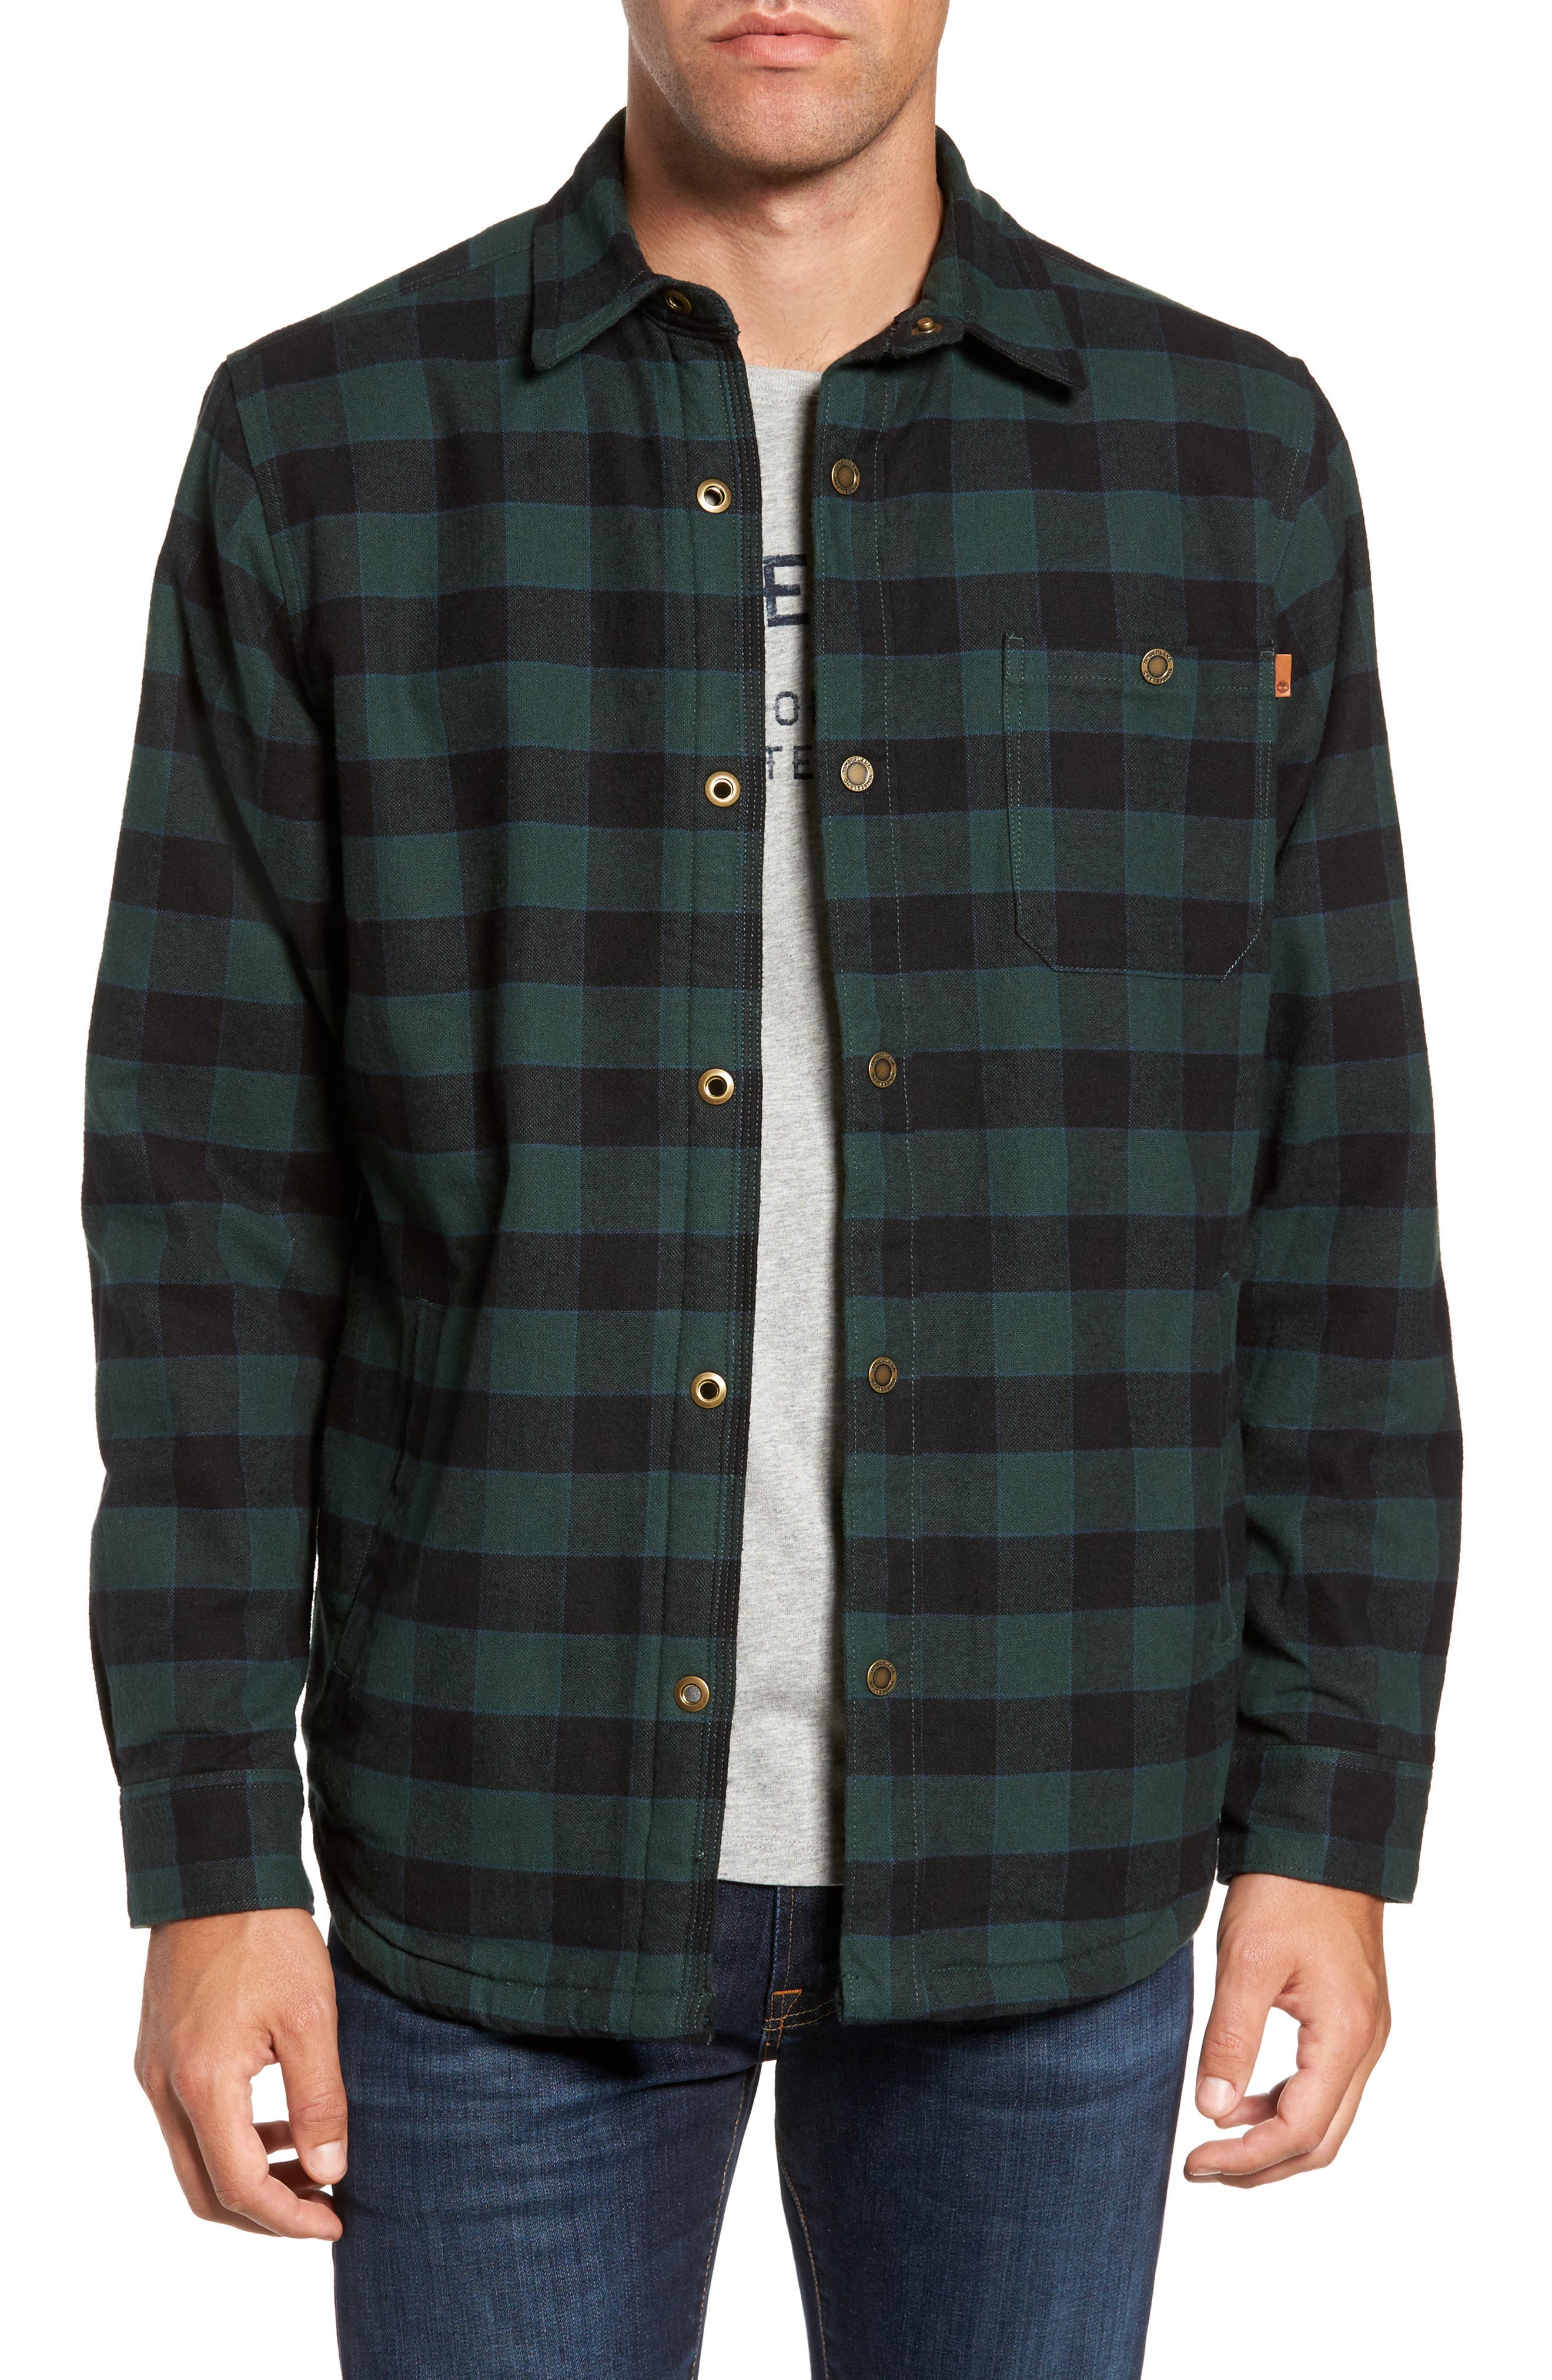 Alternate Image 1 Selected - Timberland Check Shirt Jacket with Faux Shearling Lining